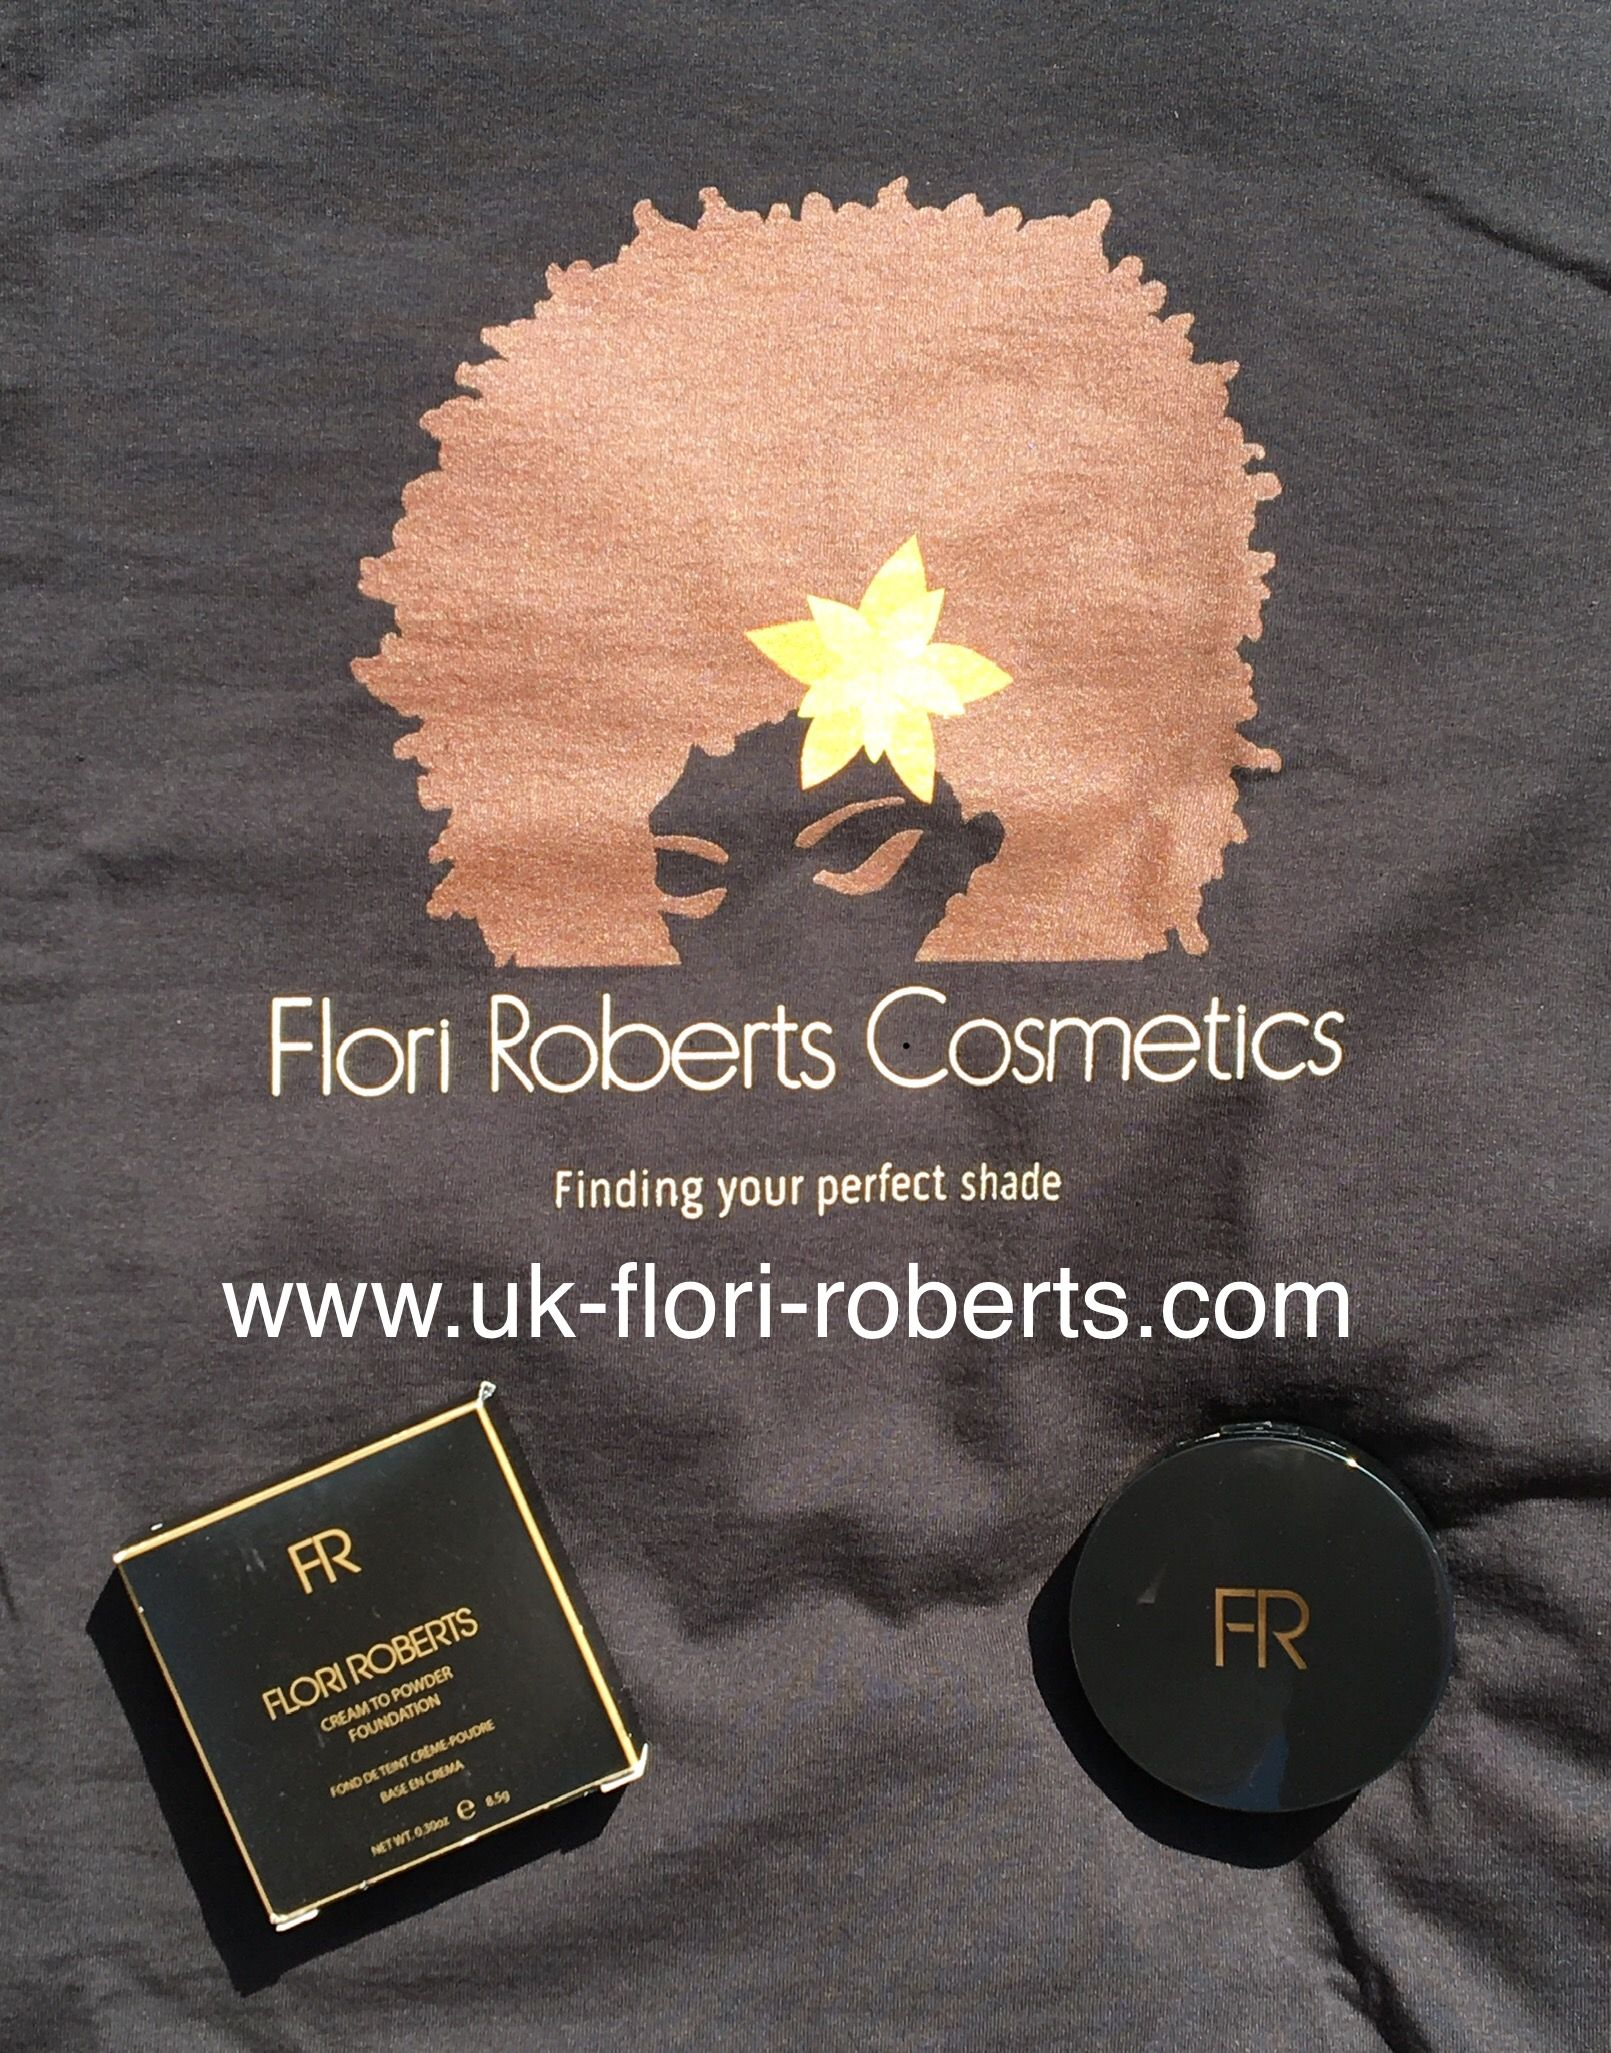 U.K. Flori Roberts Foundation, find your perfect shade. 14